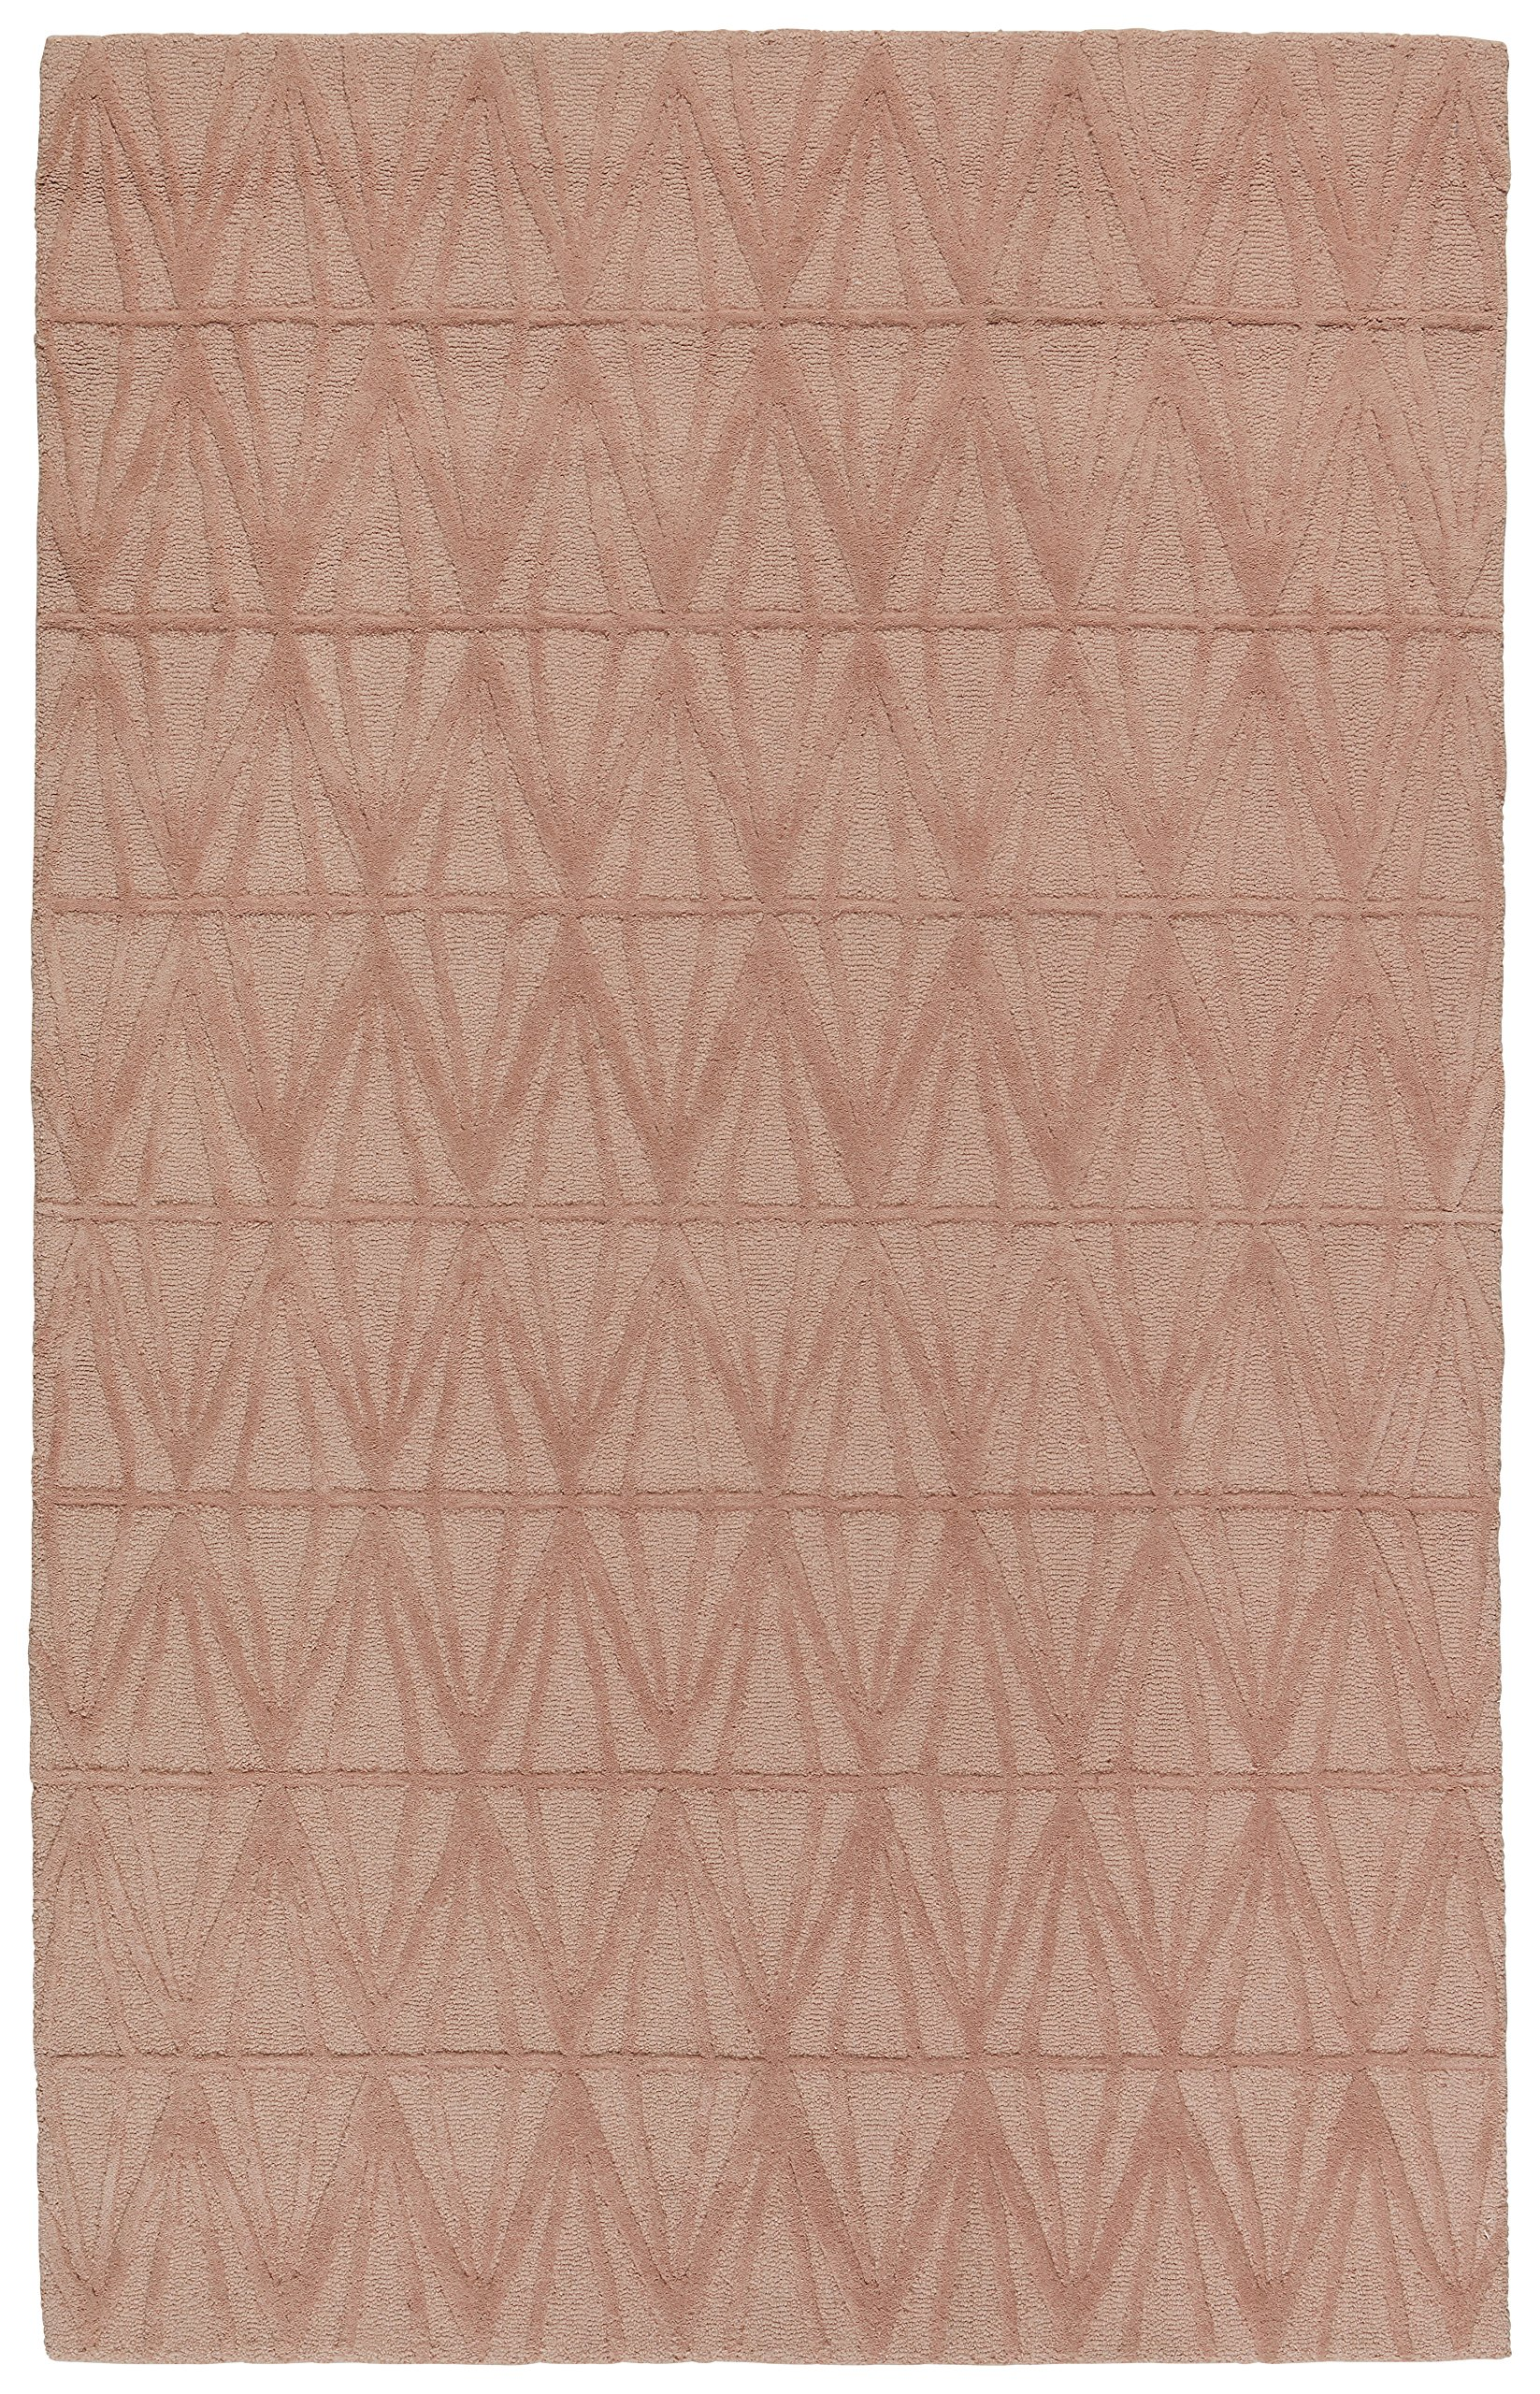 Rivet Sunset Textured Geo Pattern Wool Area Rug, 8' x 10', Pink by Rivet (Image #1)